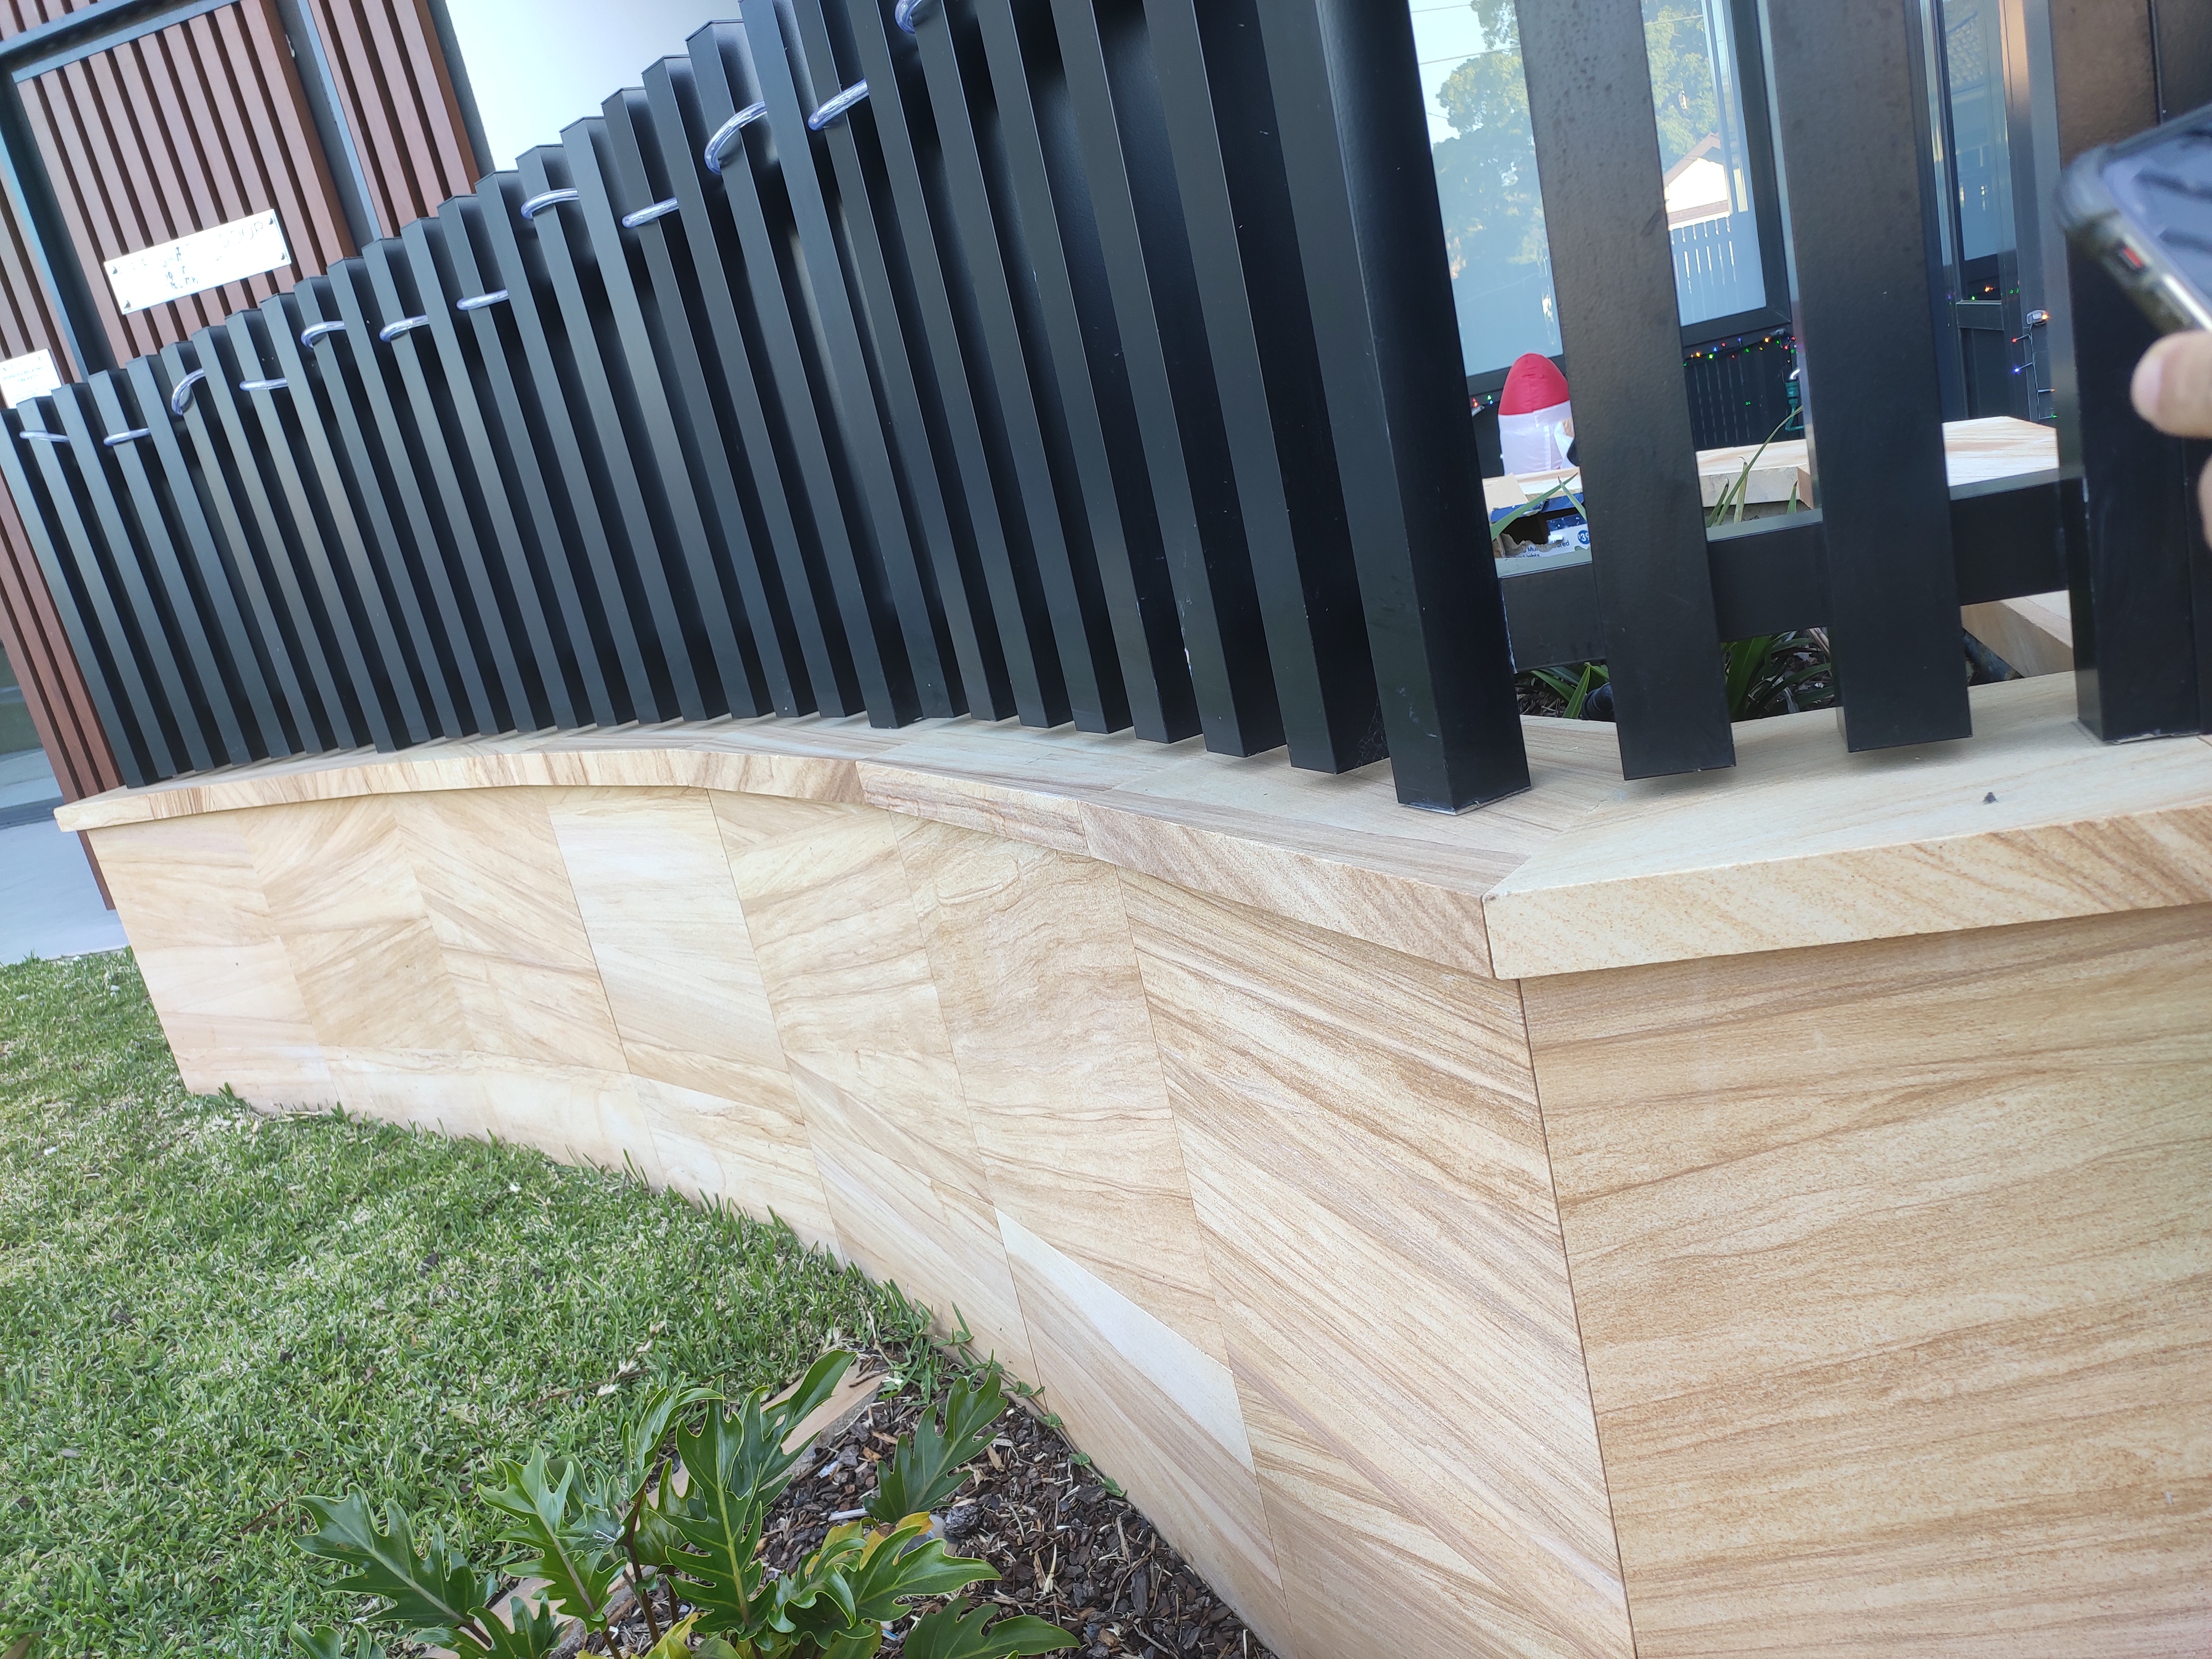 Sandstone tiles and capping in a house garden fence